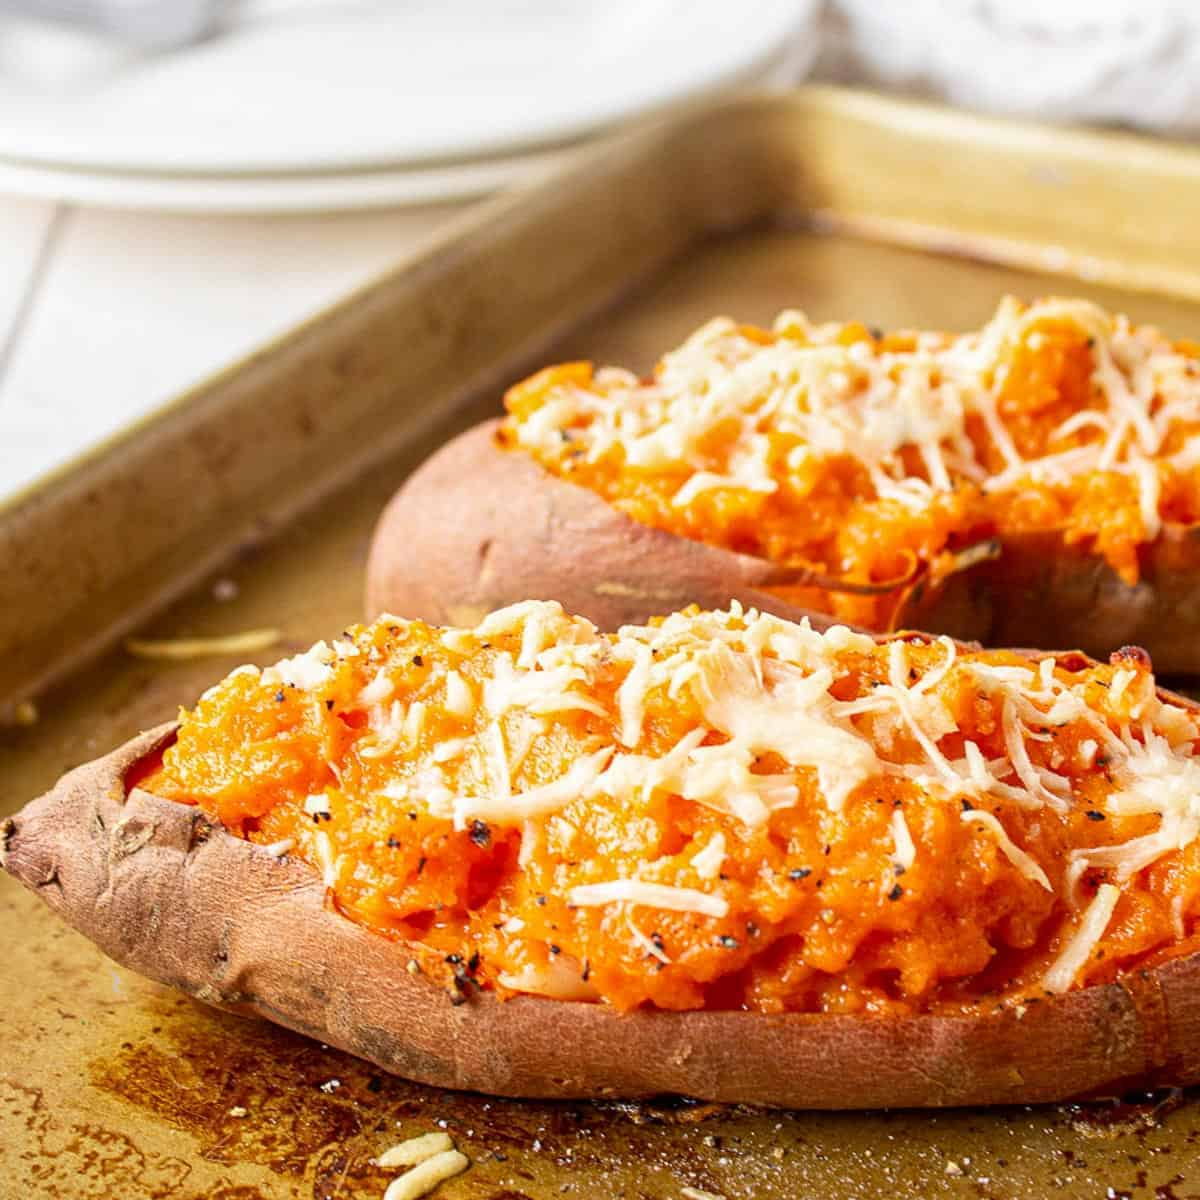 Sweet potato cut in half and filled with mashed sweet potatoes and topped with cheese.